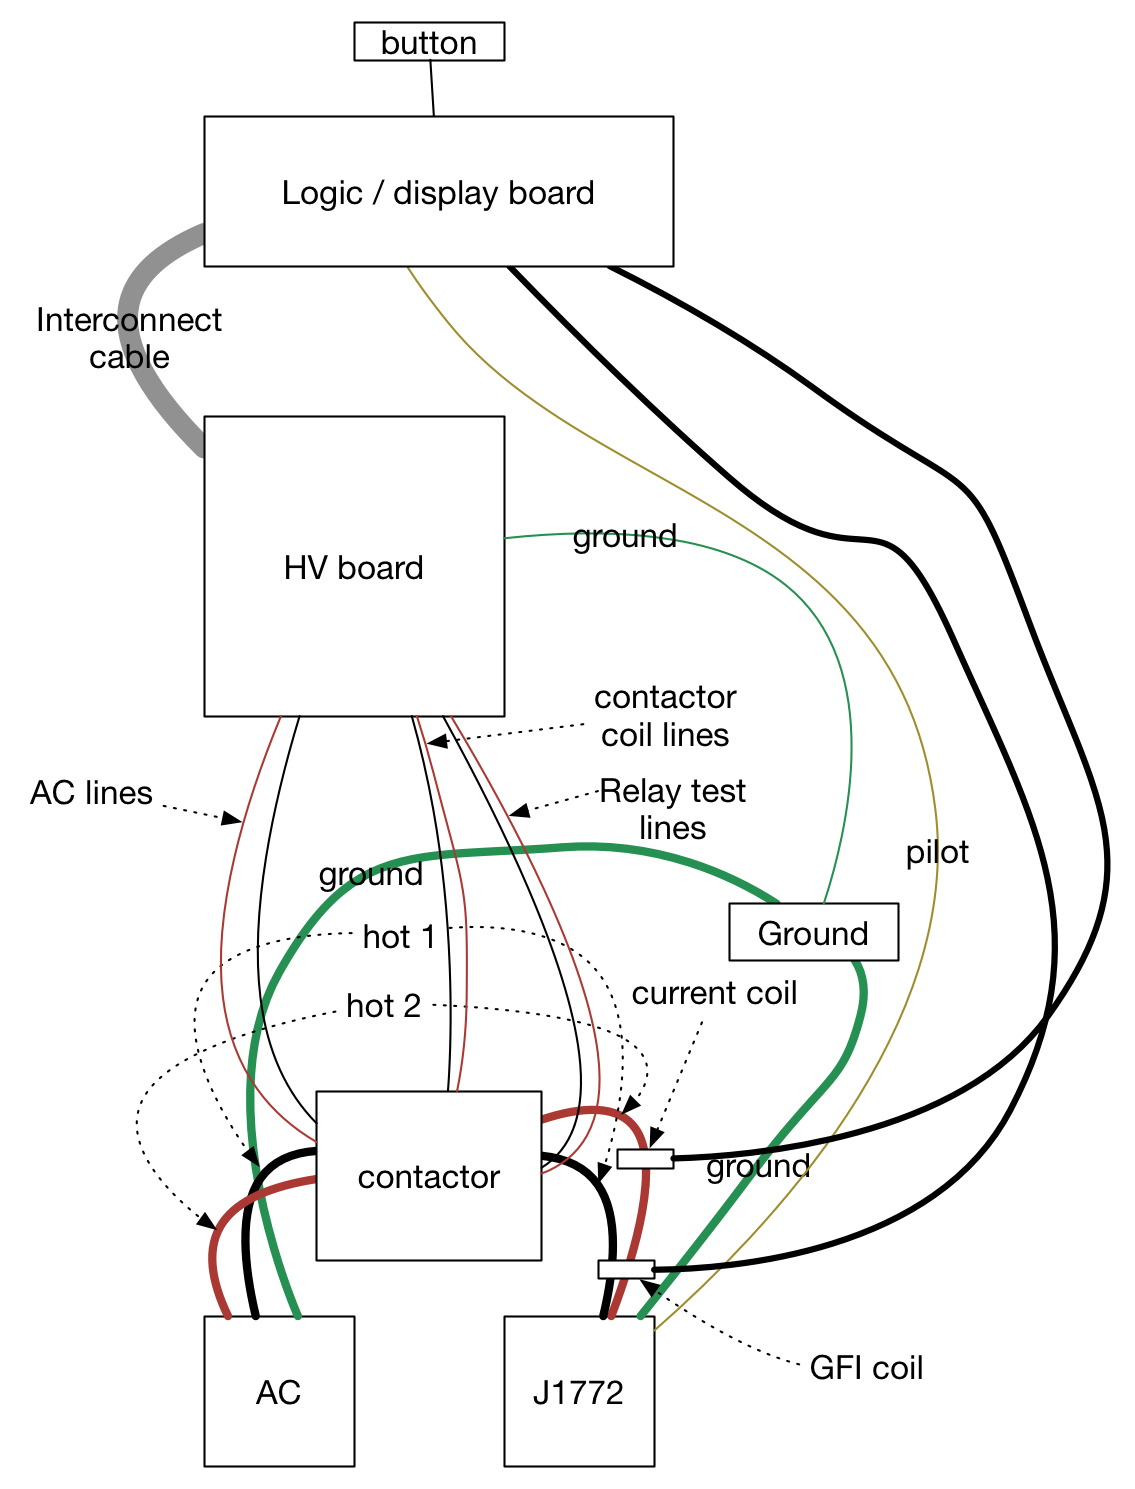 OpenEVSE_II_Wiring_Contactor geppetto electronics december 2014 24 volt ac relay wiring diagram at n-0.co